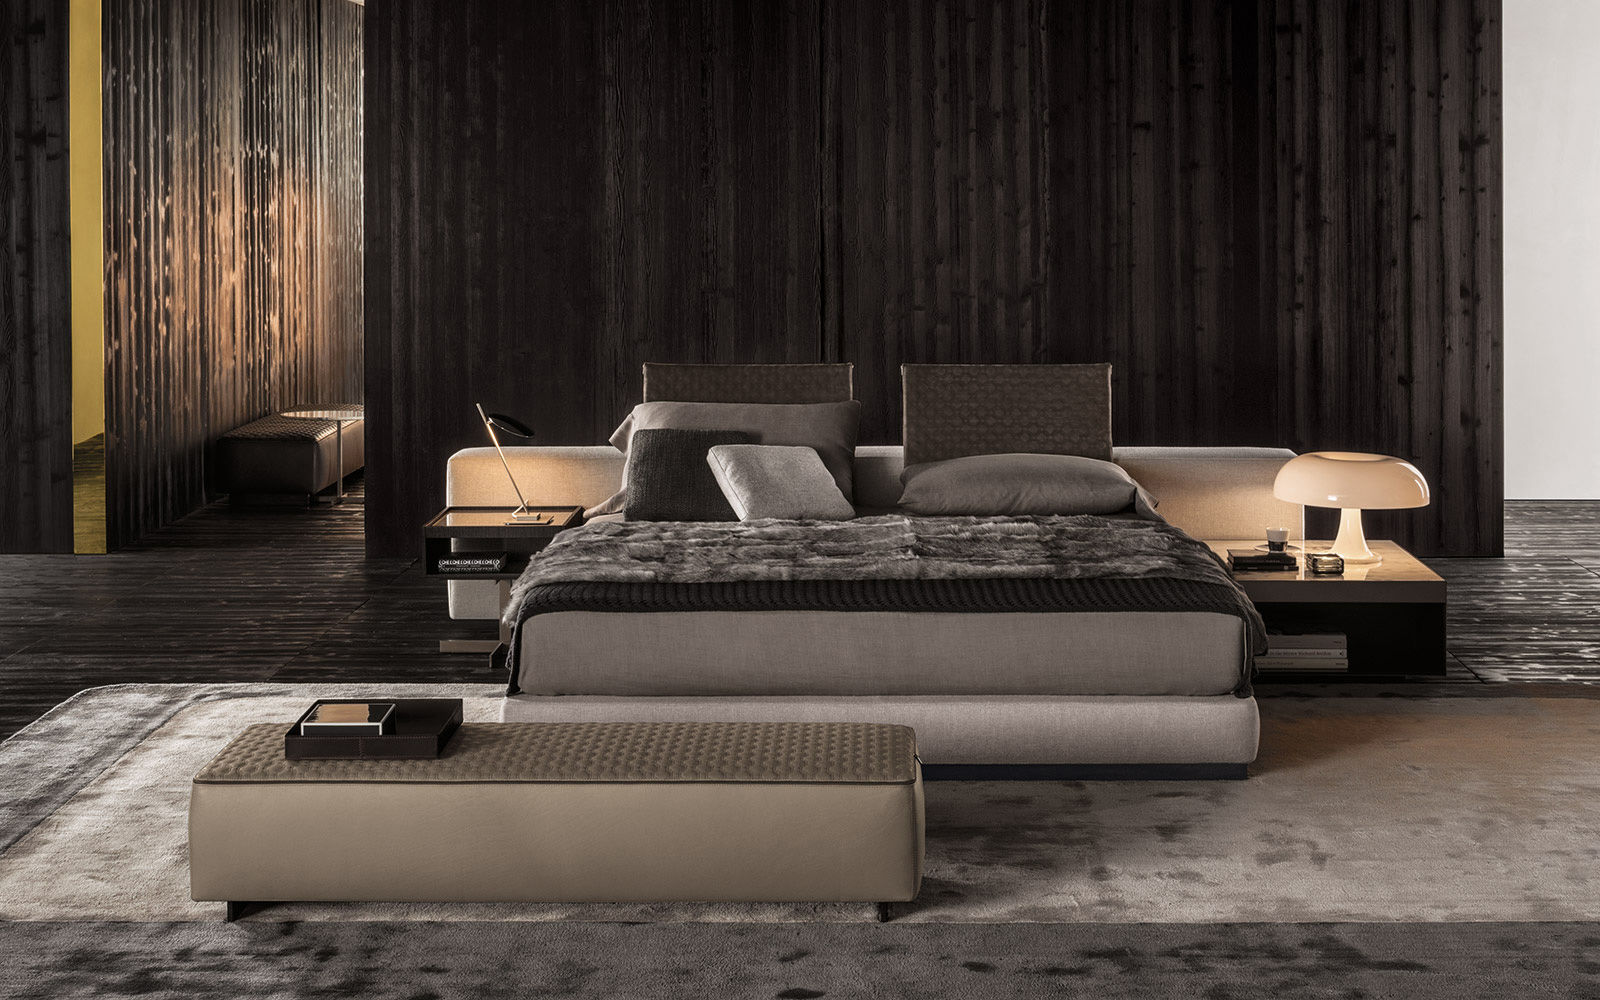 BEDS EN YANG BED : 14660zYANG BED 02 GALLERY from www.minotti.com size 1600 x 1000 jpeg 289kB